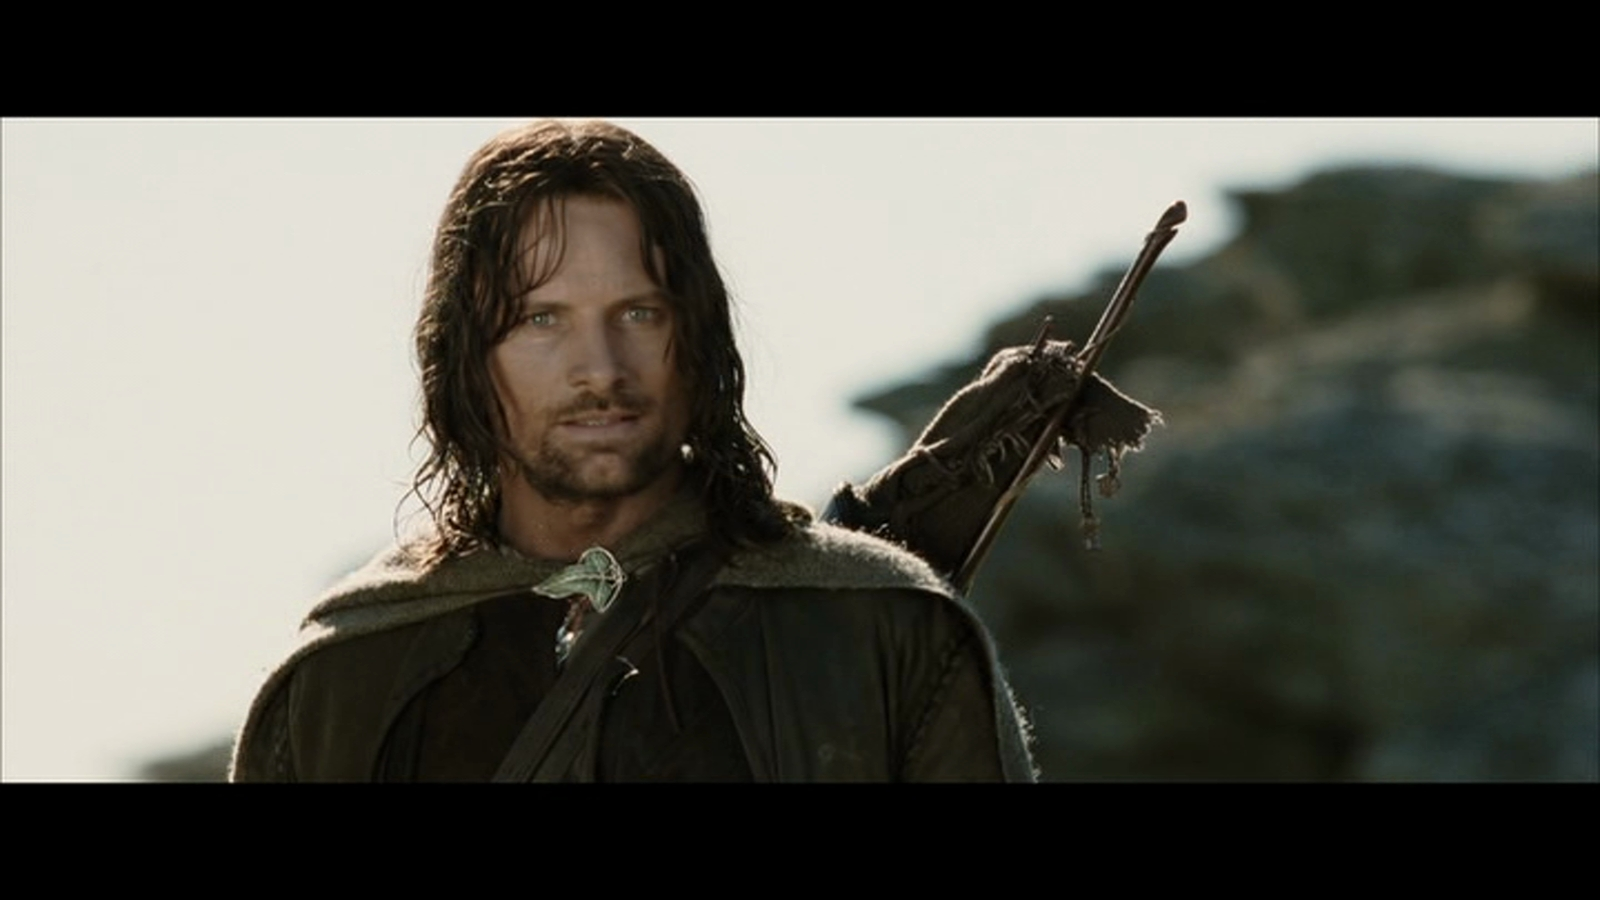 Aragorn images Aragorn HD wallpaper and background photos (33791833)